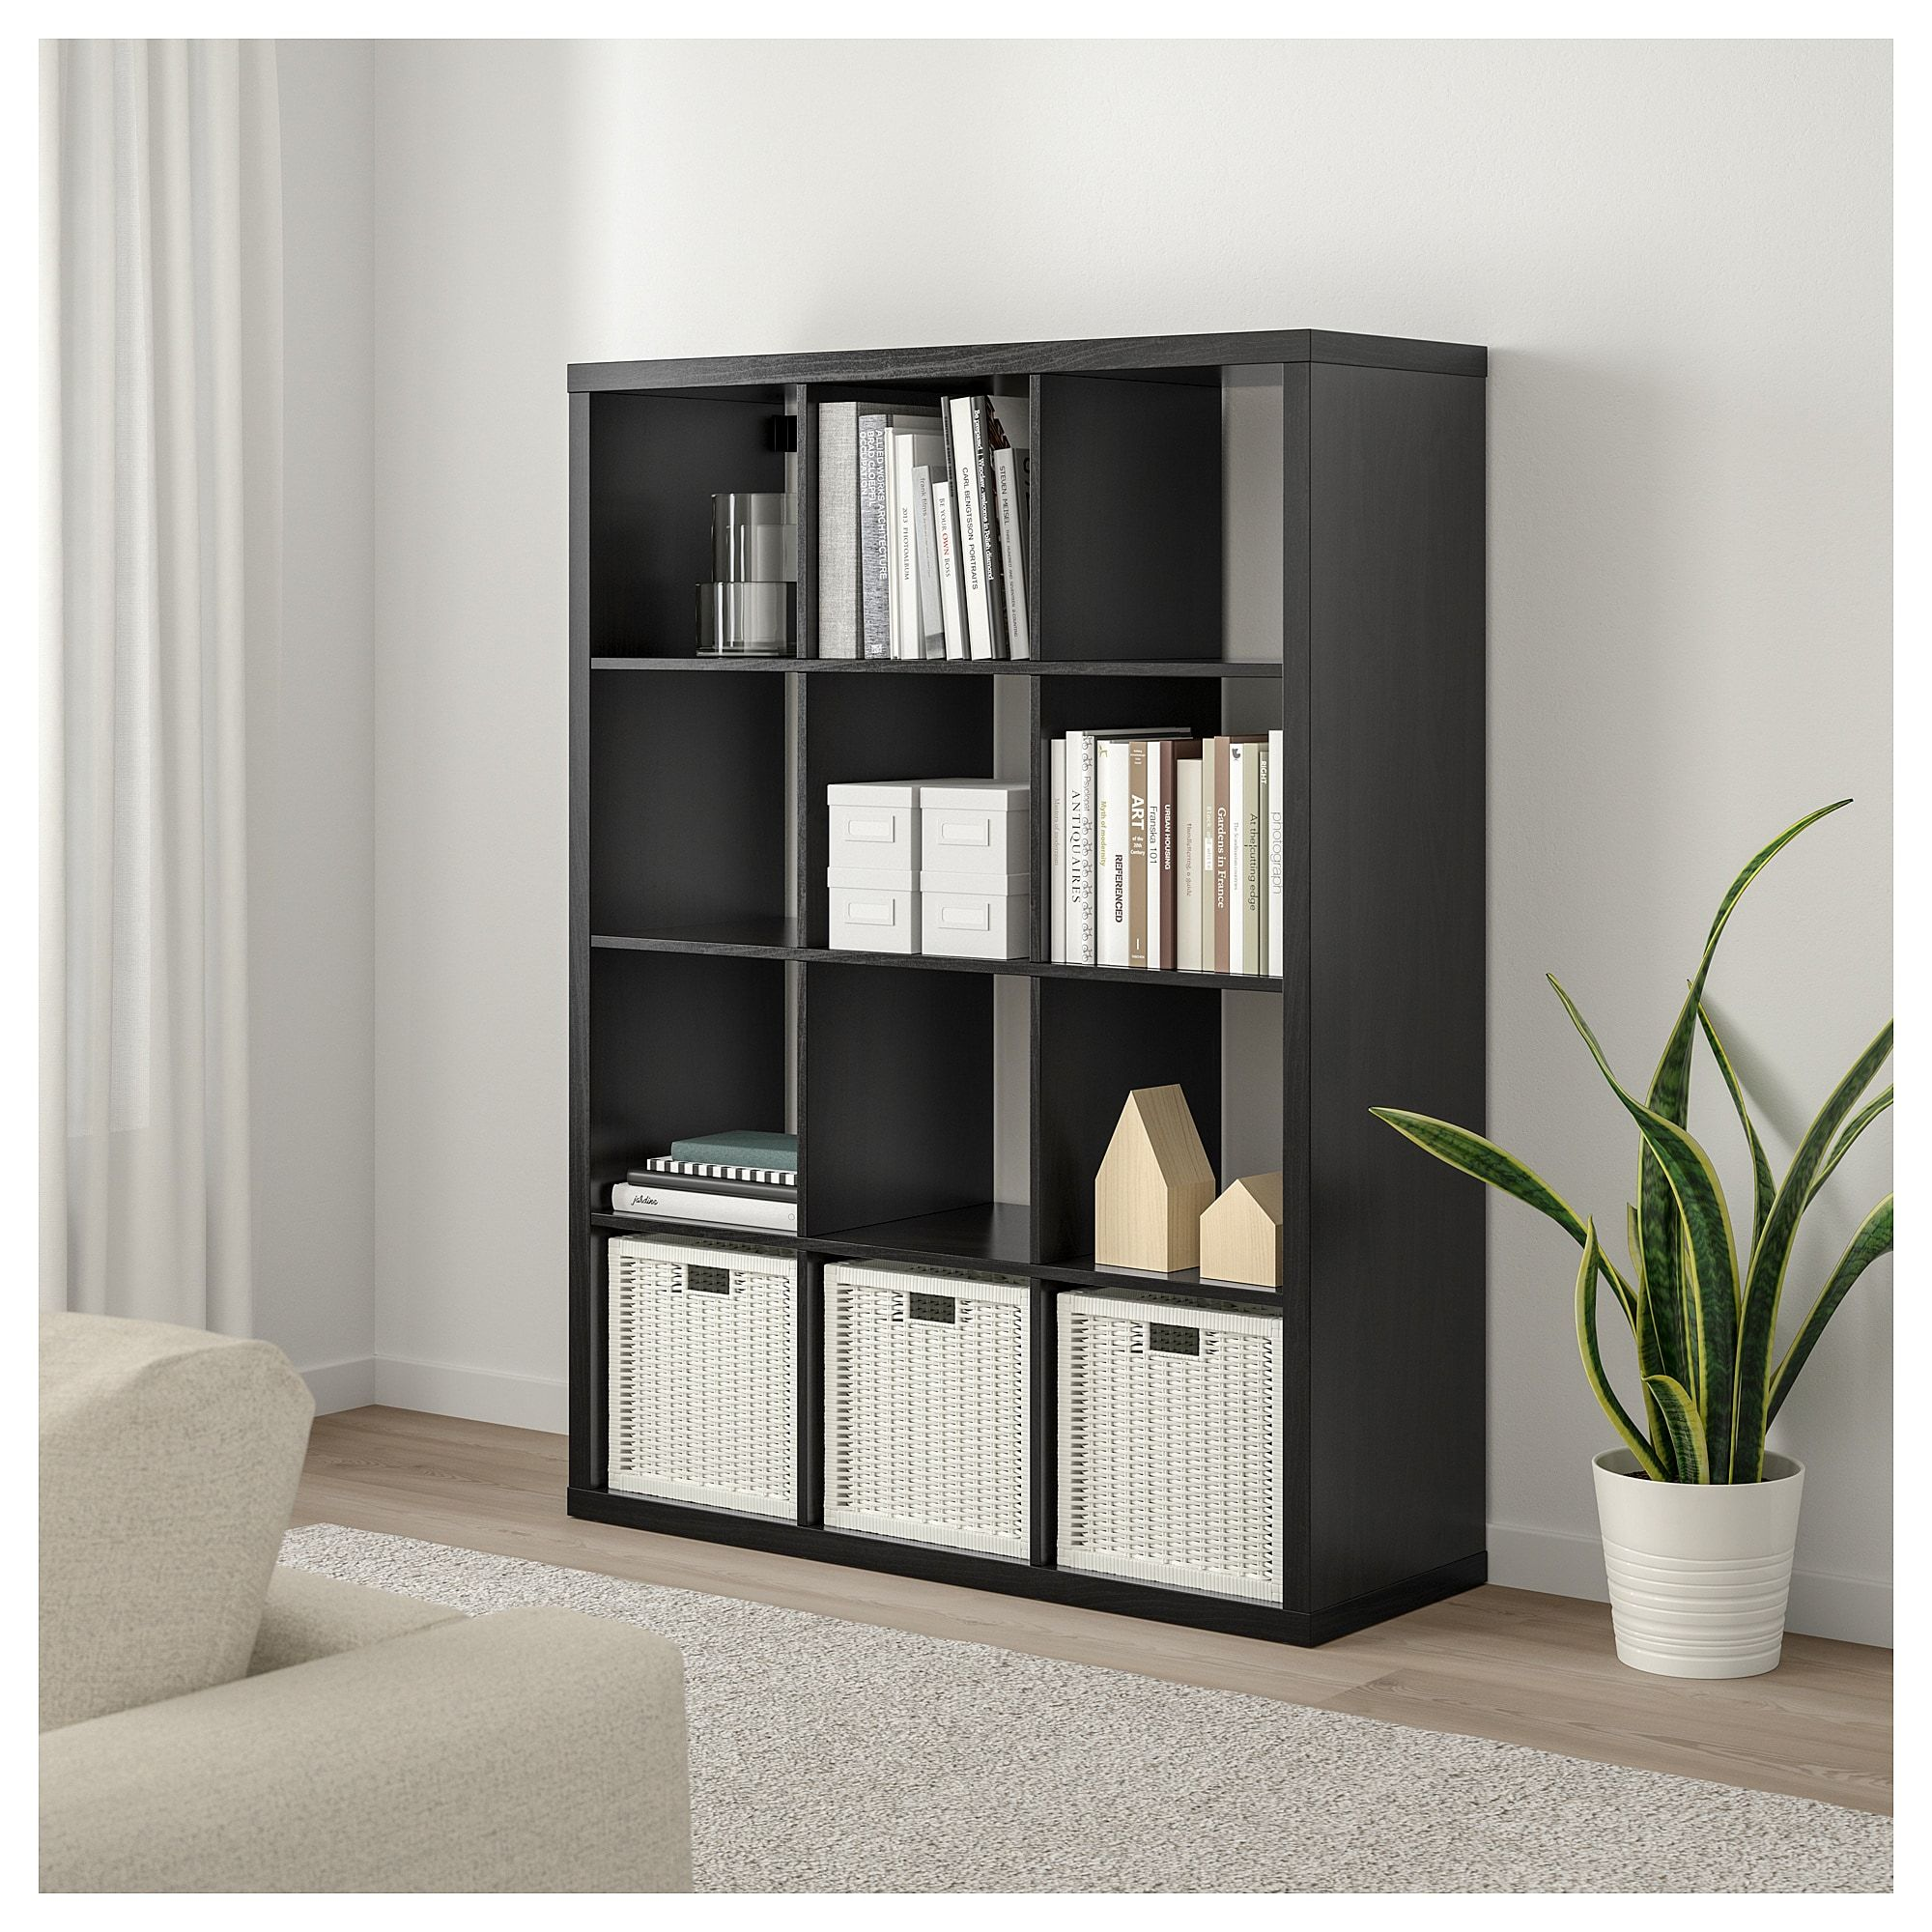 KALLAX Shelf unit - black-brown - IKEA  Ikea kallax shelf unit